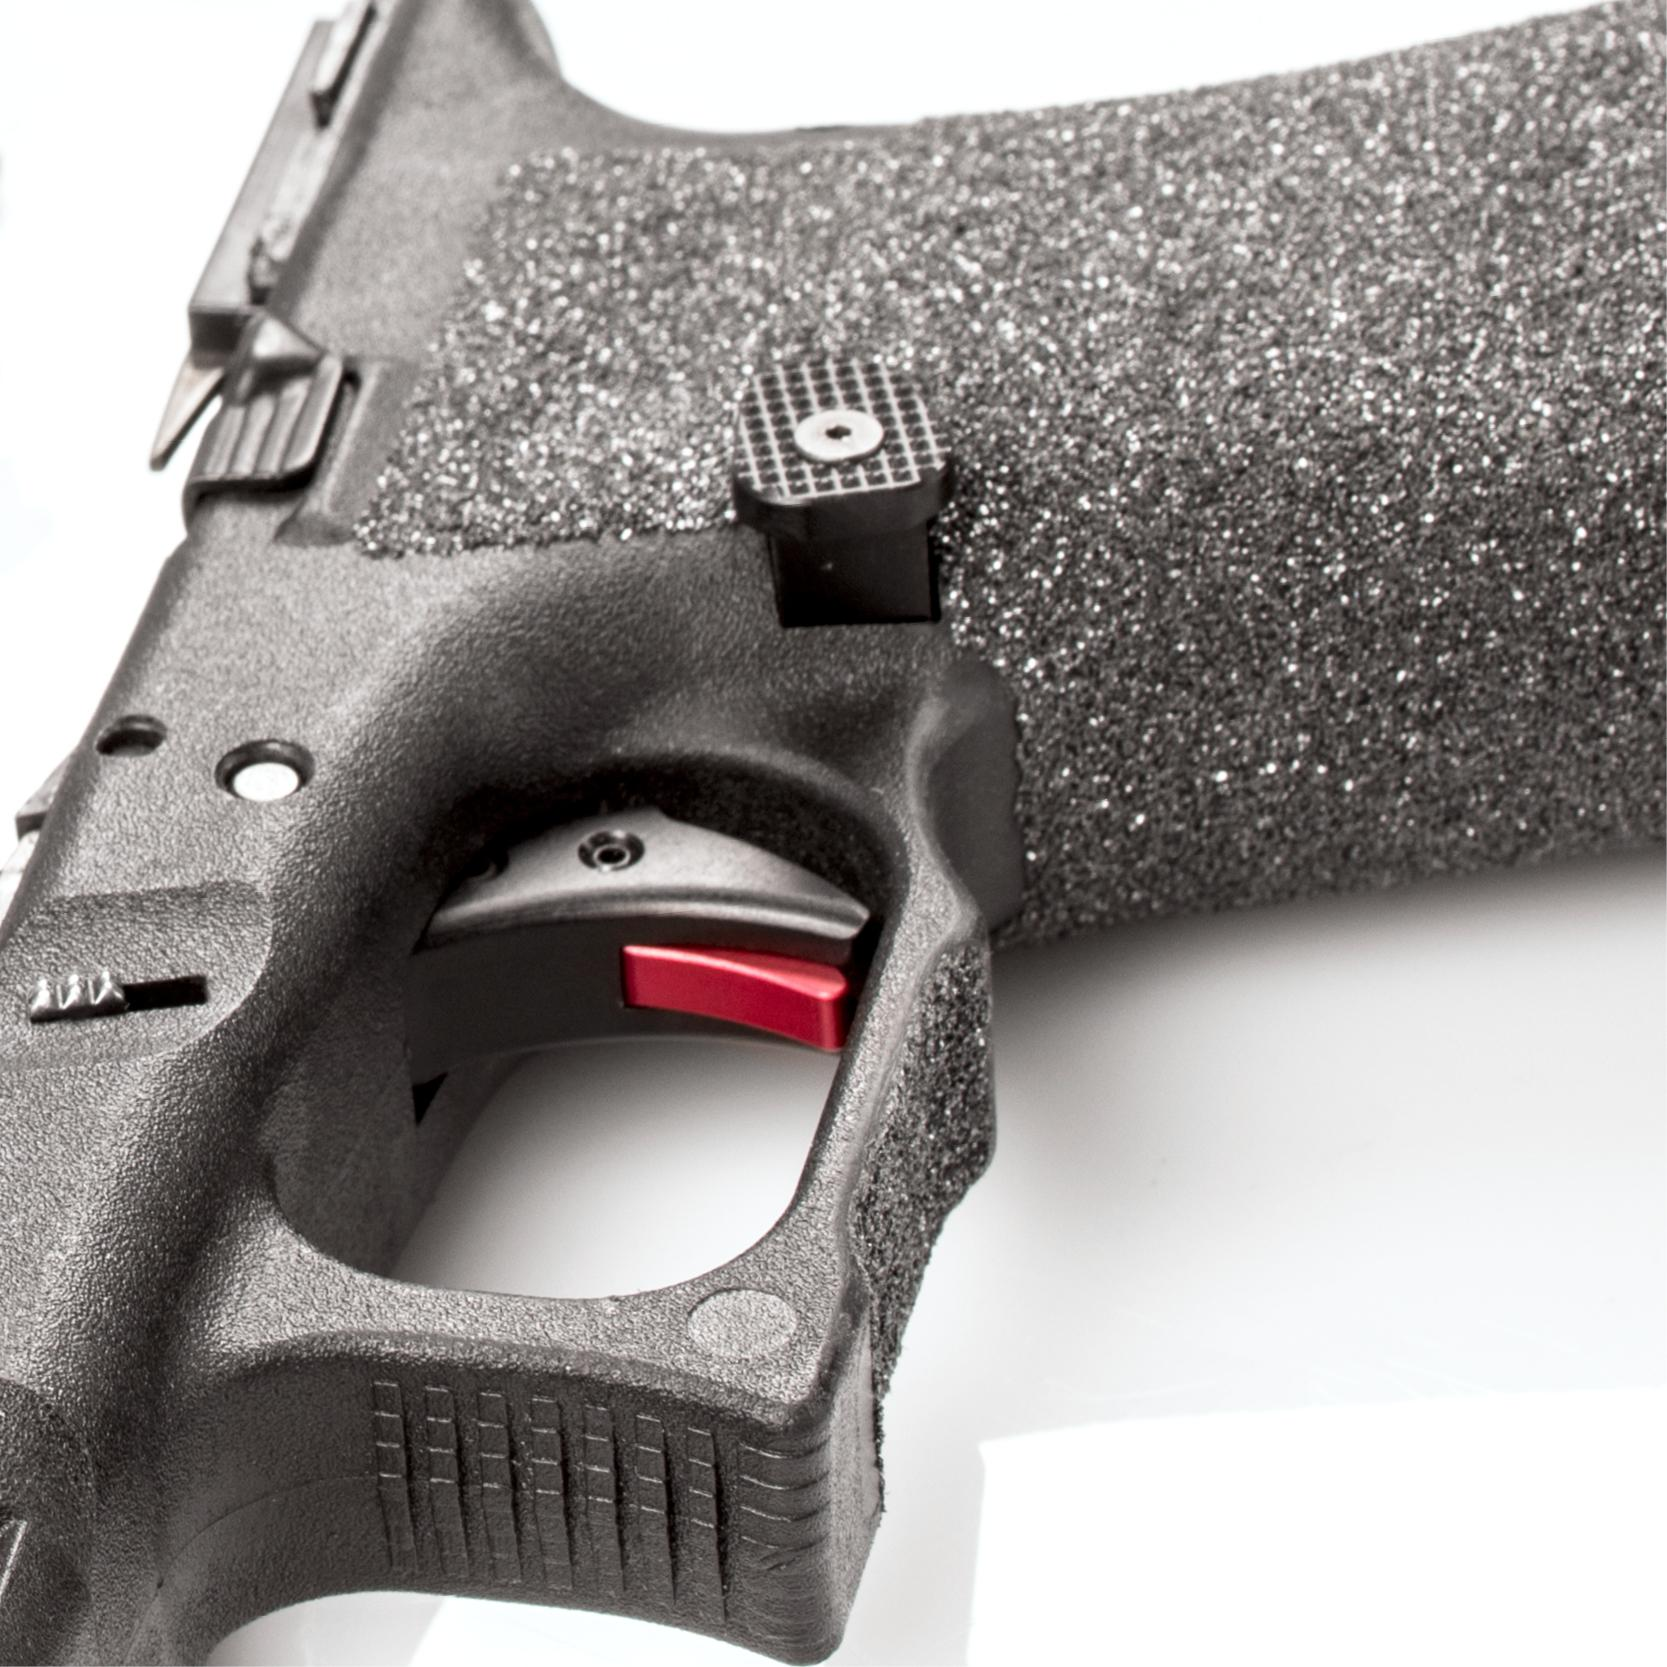 Glock Pistol Trigger, Barrel, Slide and Other Premium Upgrades